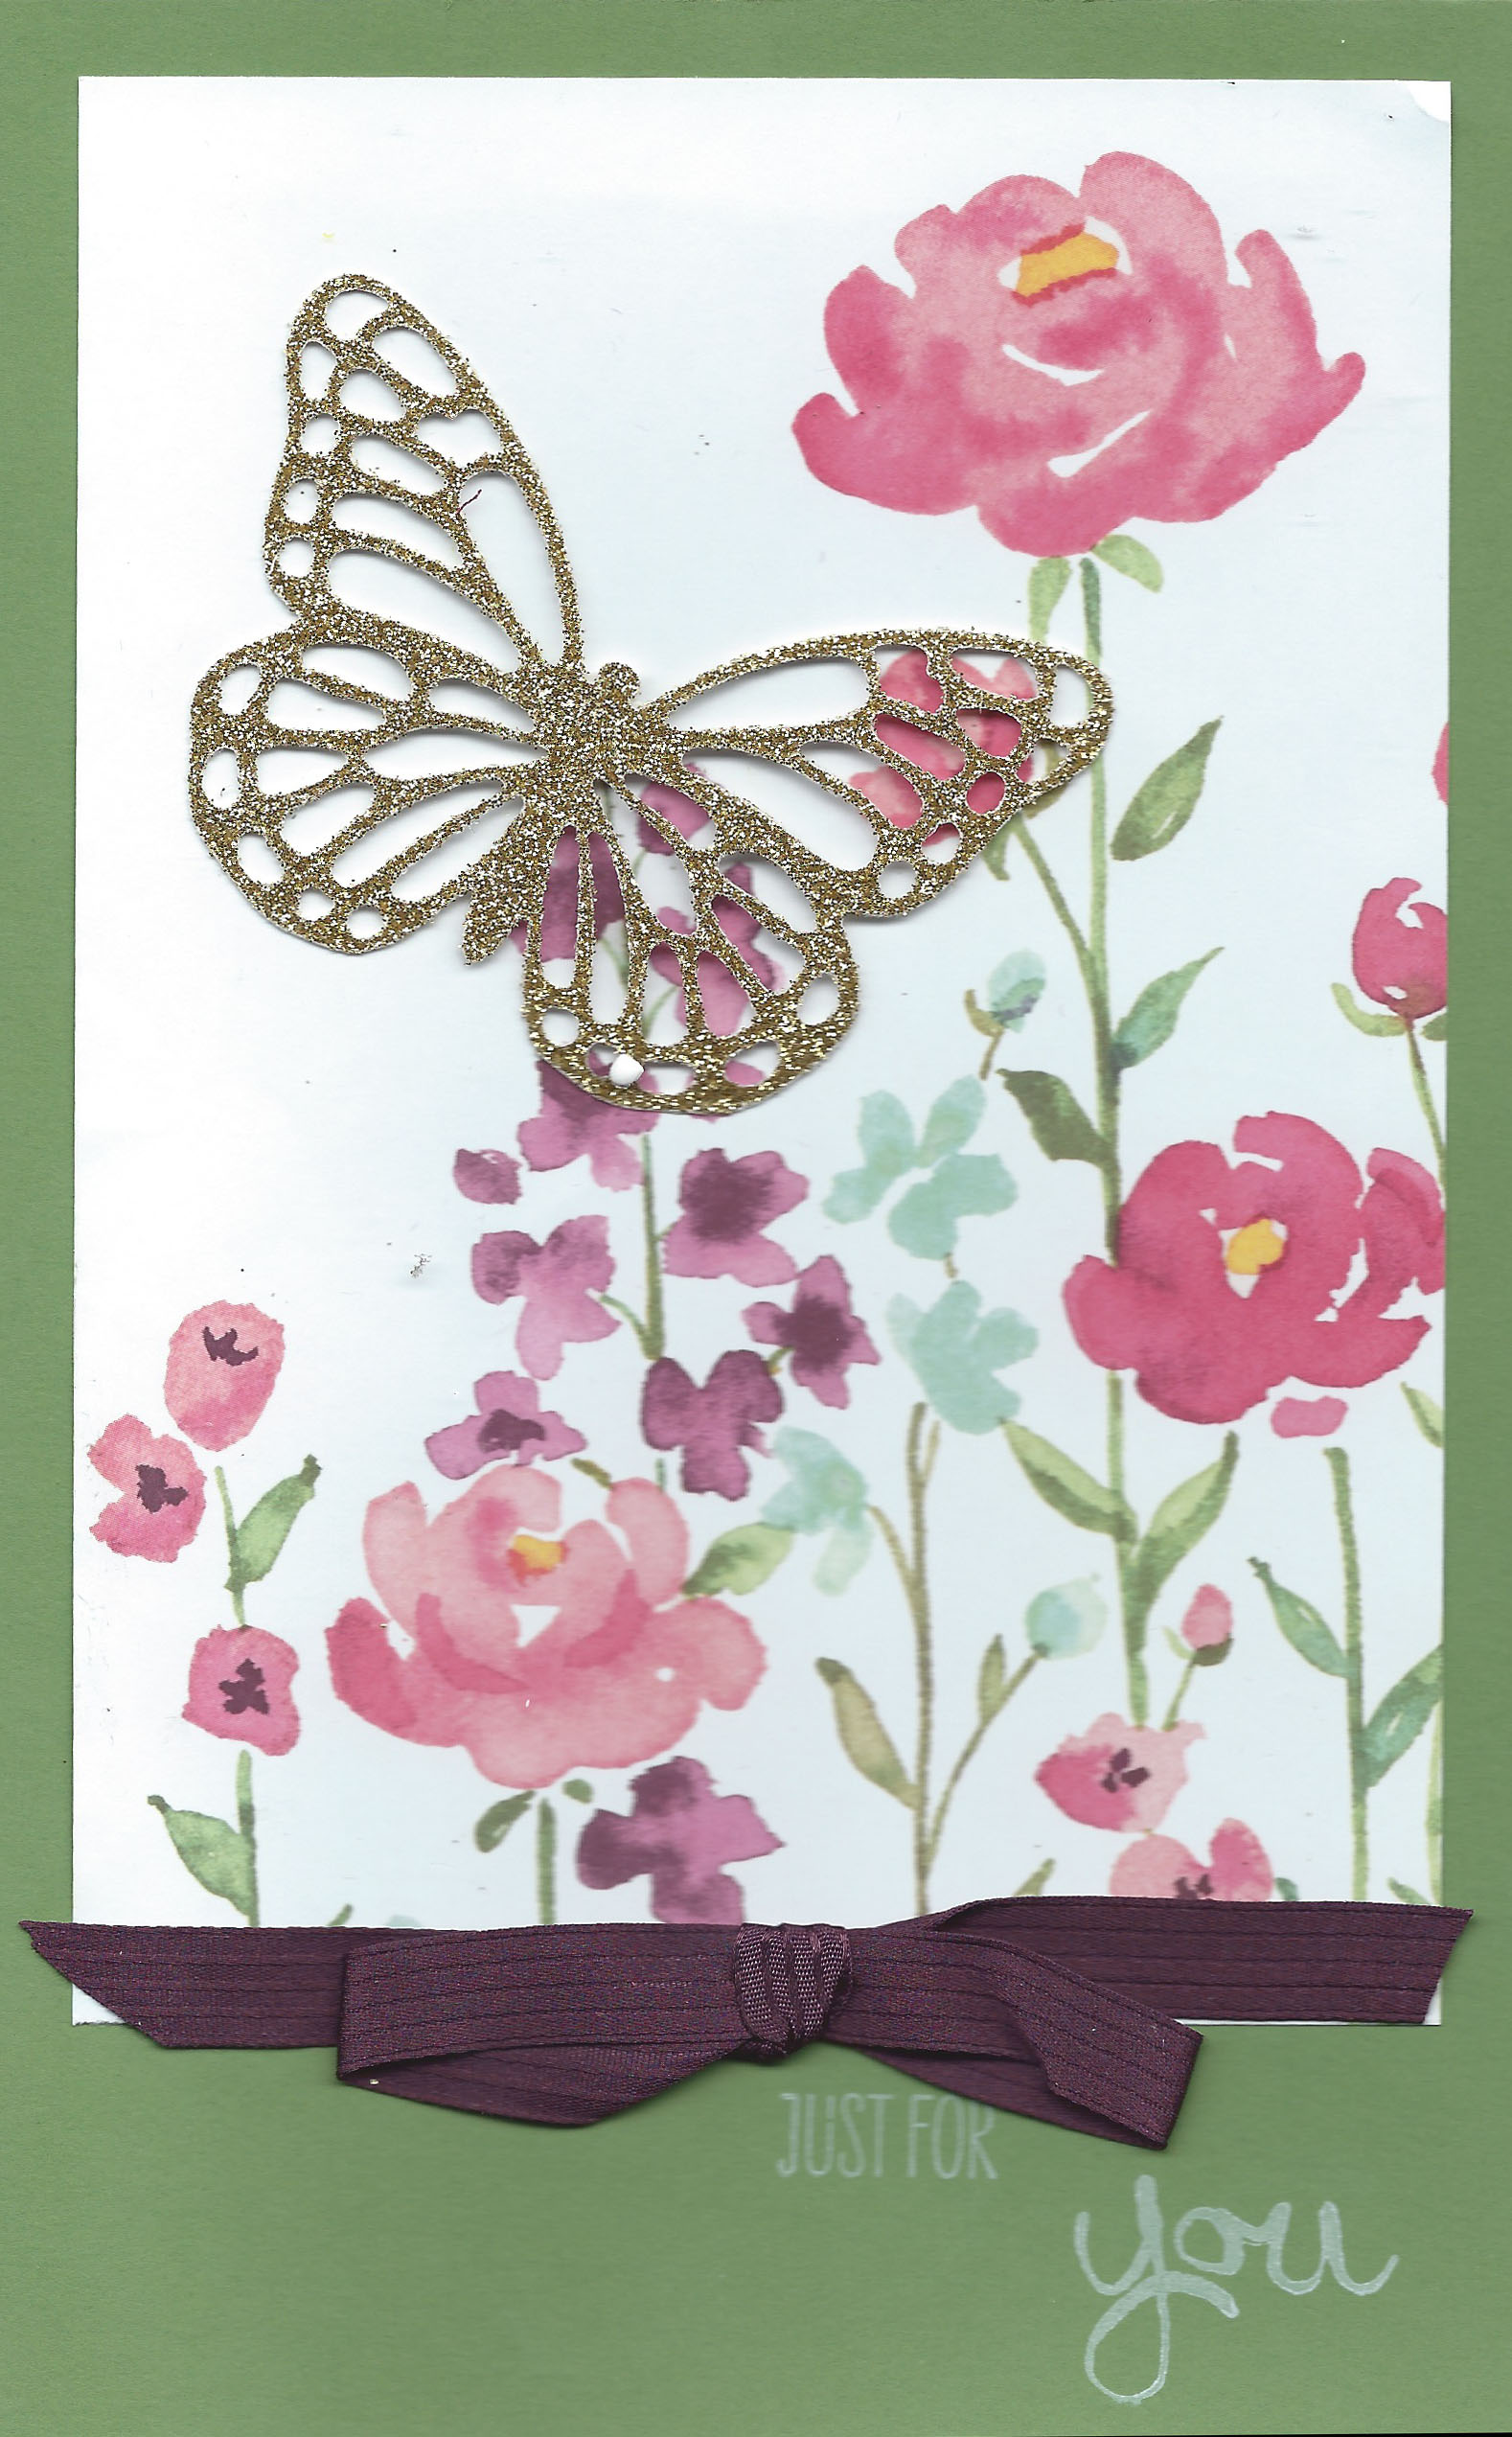 Painted Blooms handstamped card